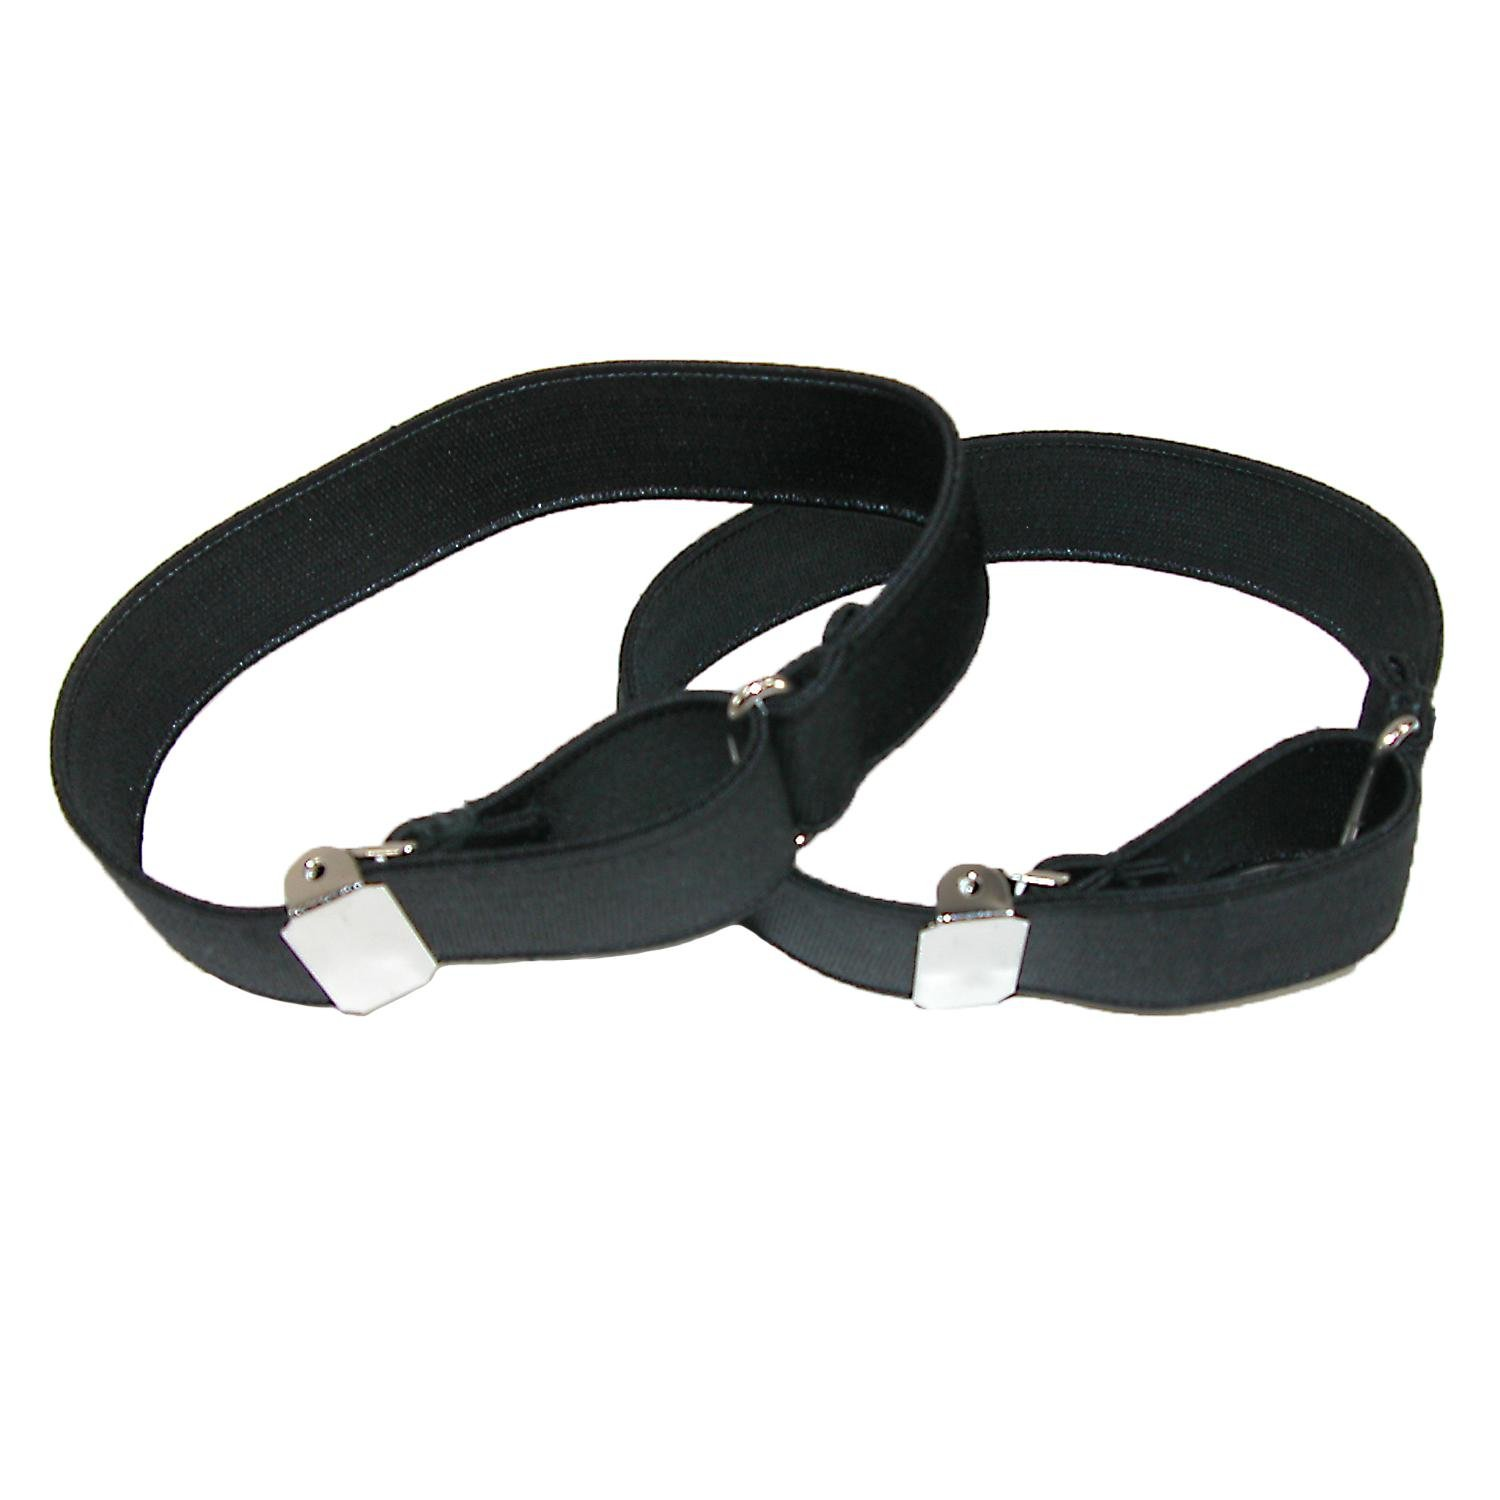 Edwardian Men's Accessories Armband Sleeve Garter CTM Satin Elastic Solid Color Adjustable $14.94 AT vintagedancer.com